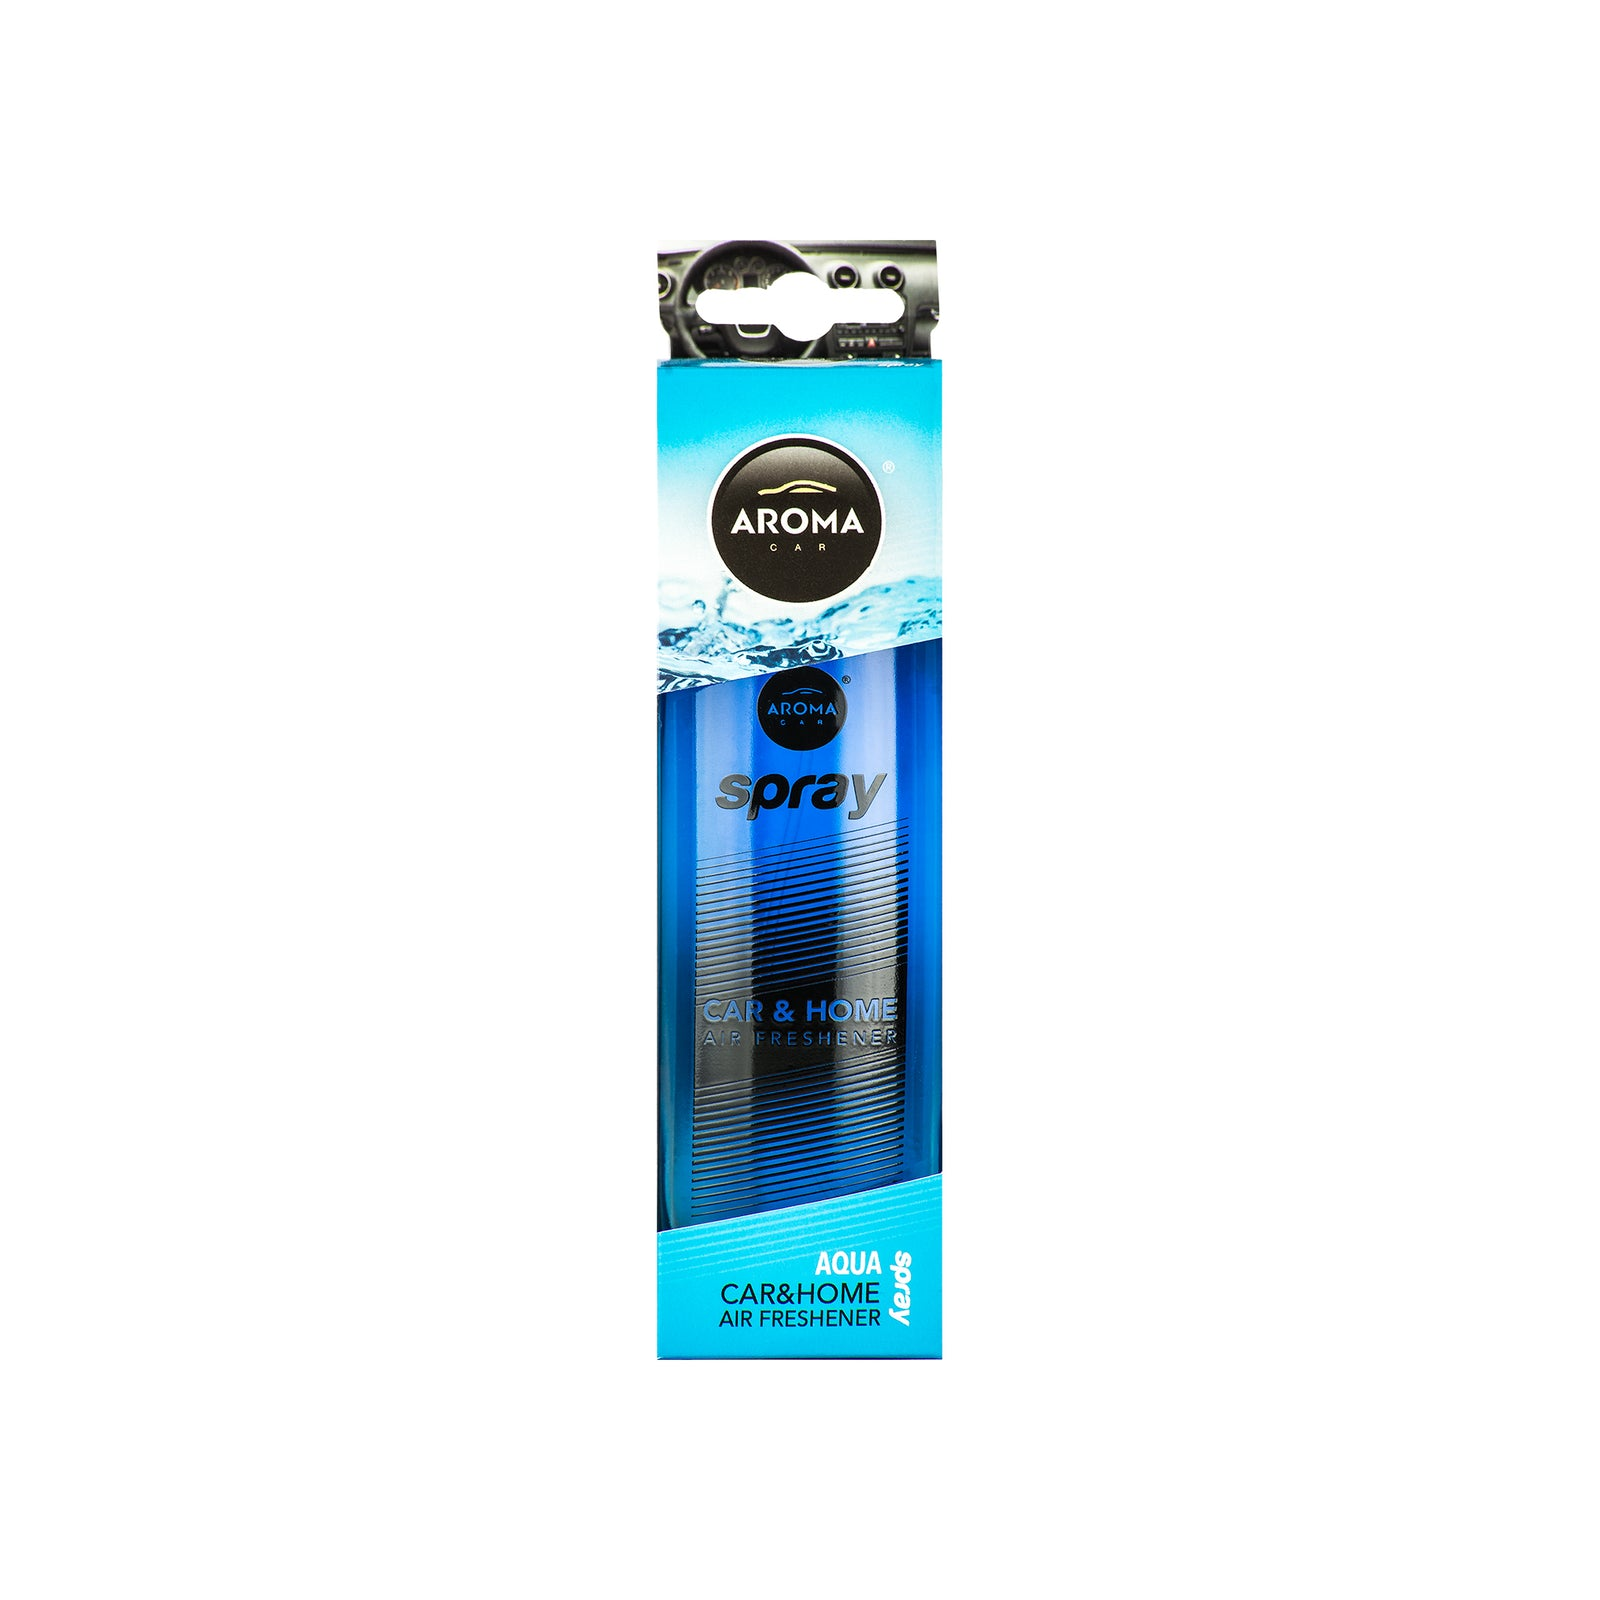 Aroma Car Pump Spray 50 ml Aqua